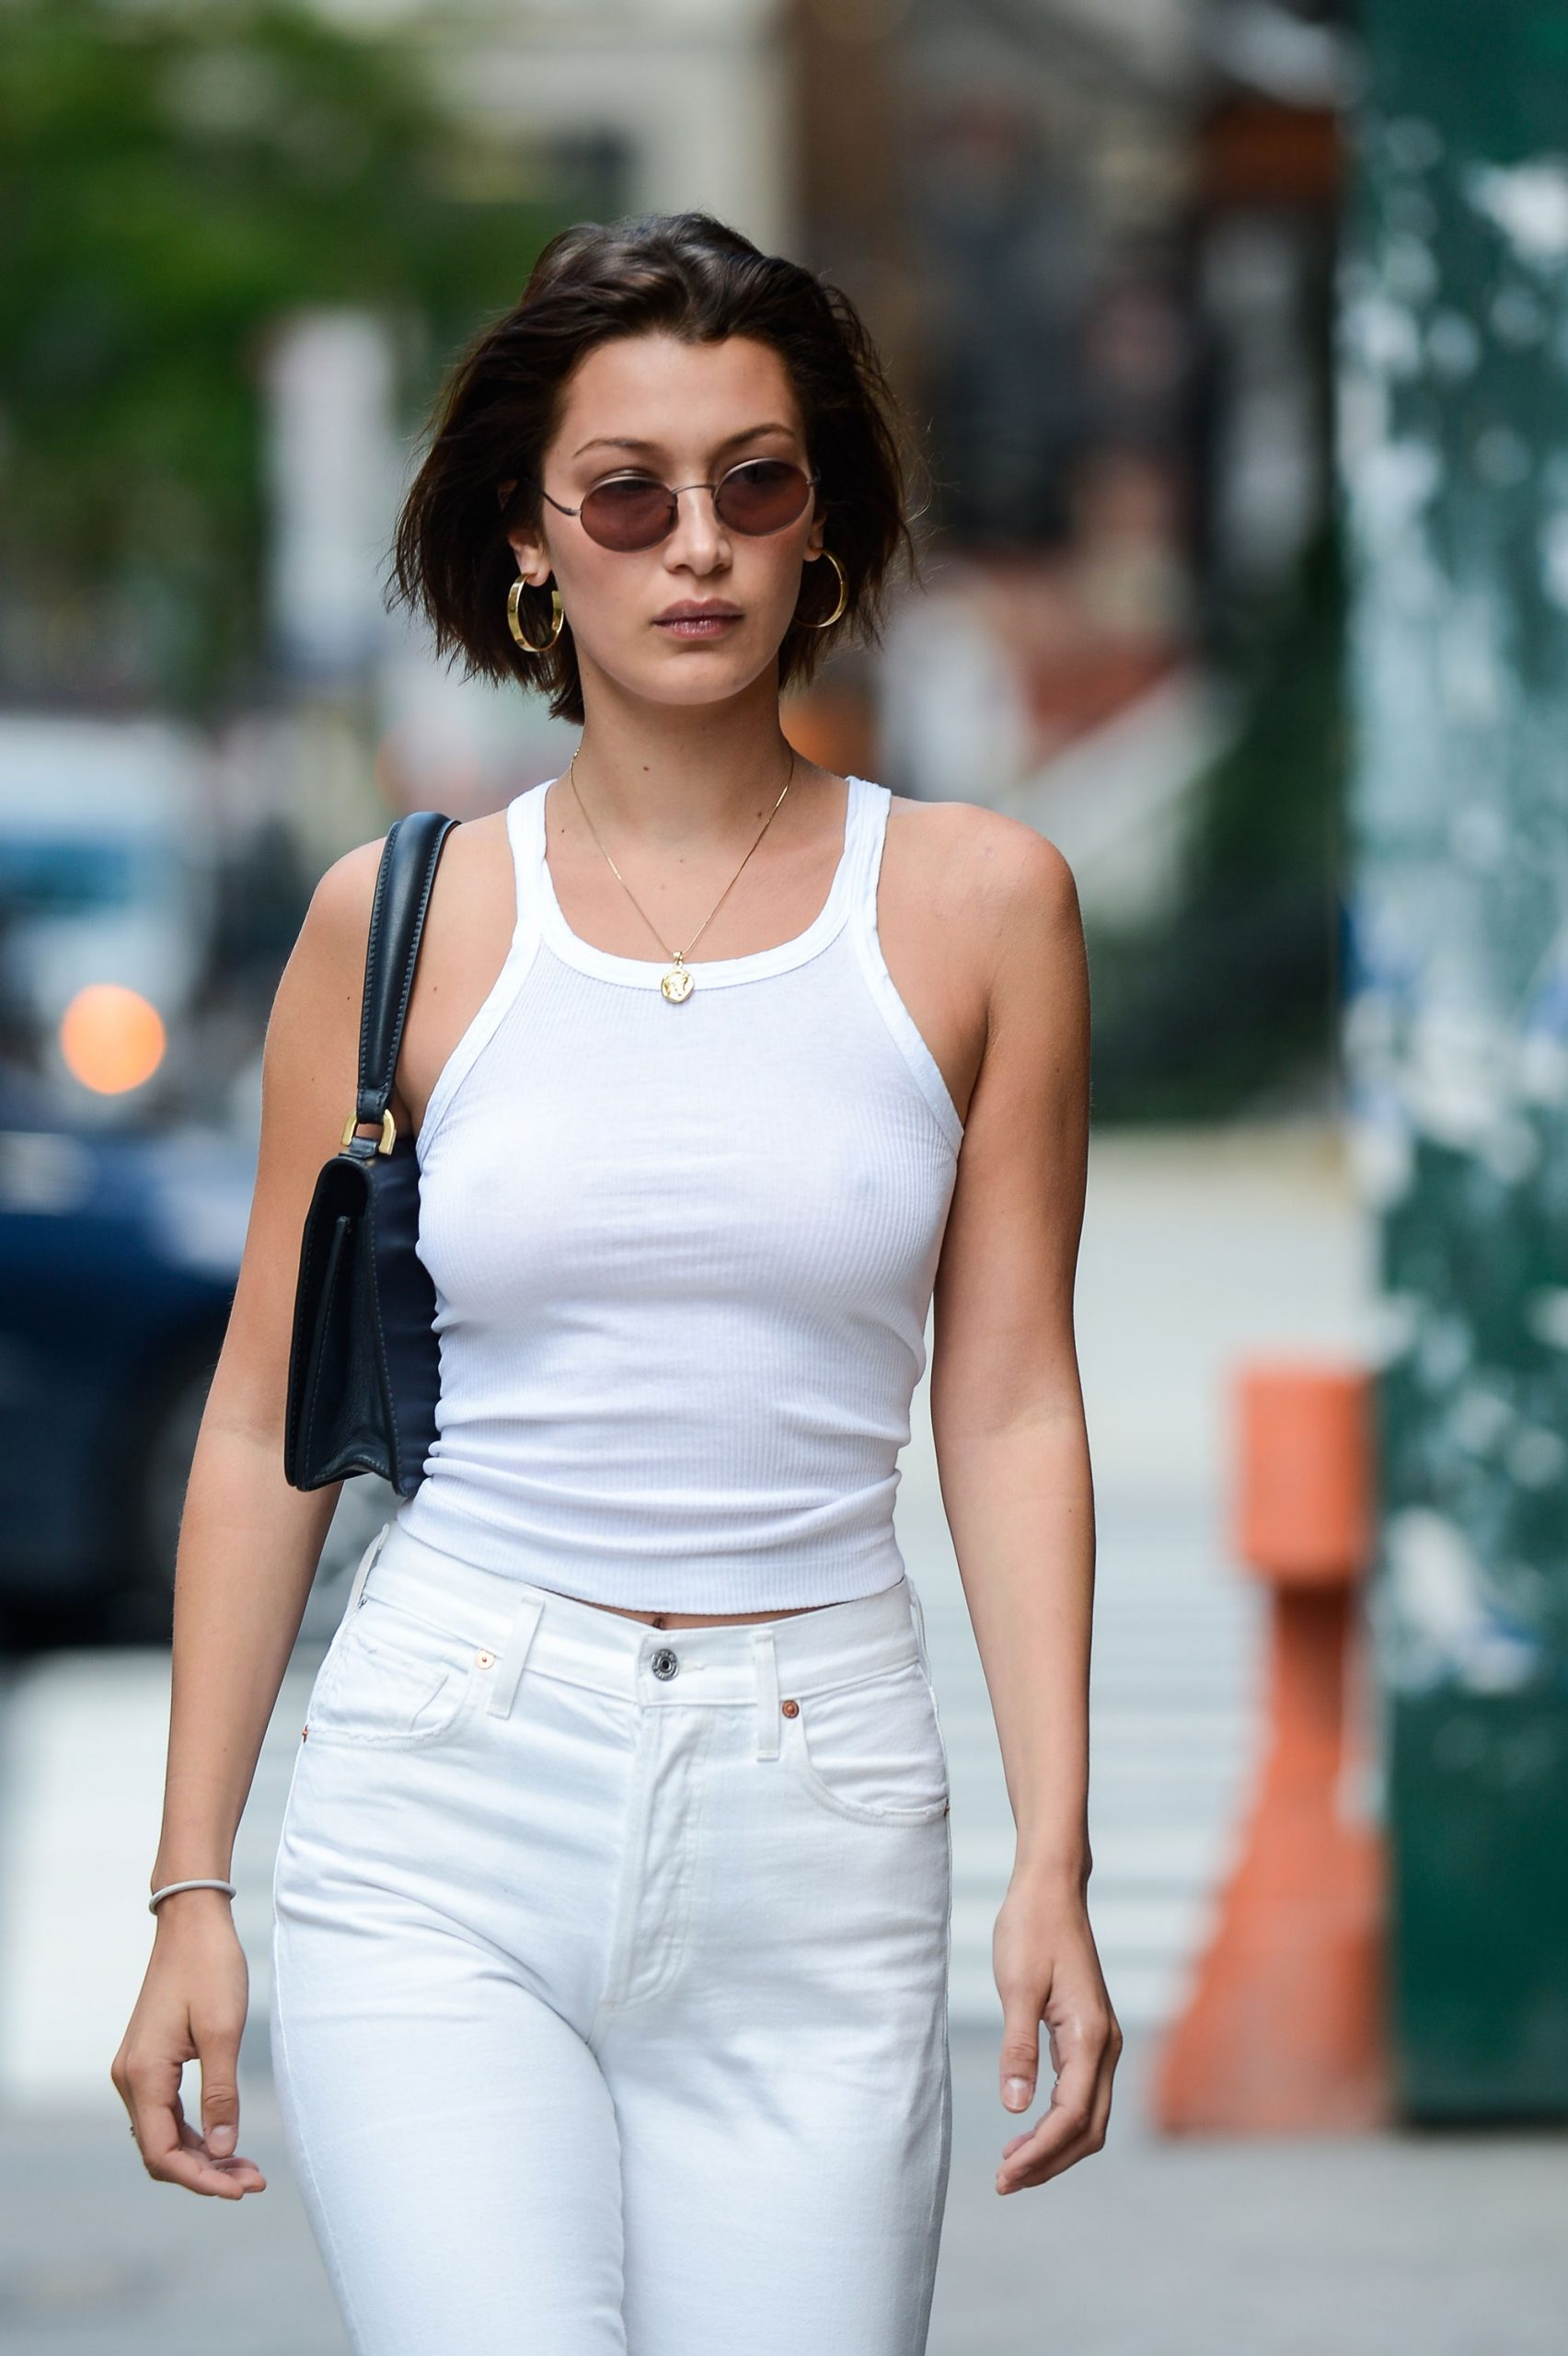 Tank top pair with skinny jeans is a good outfit